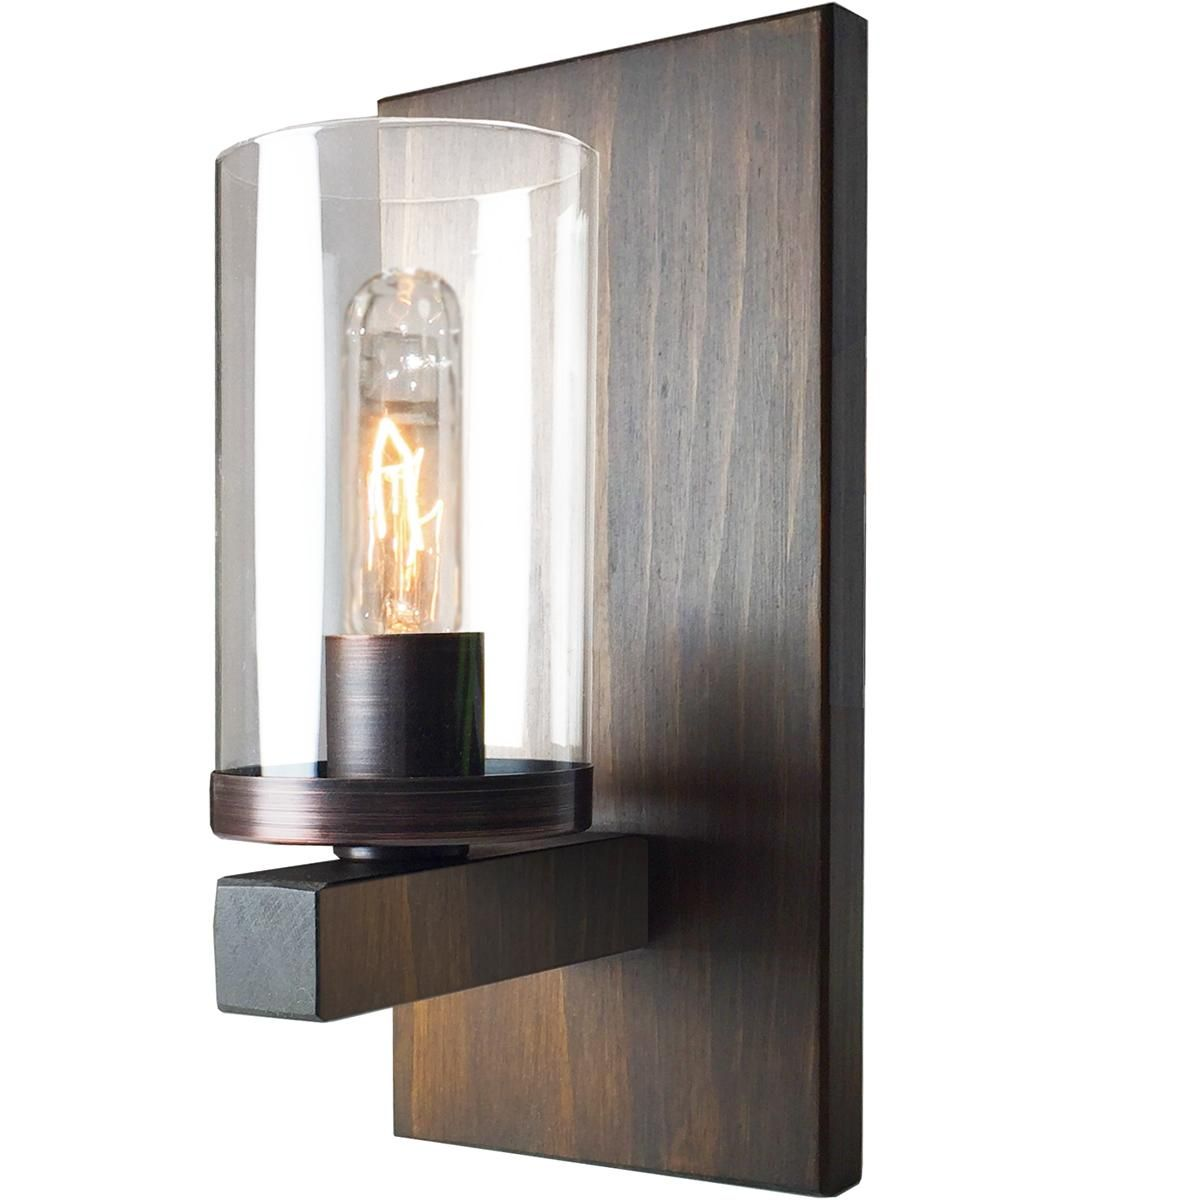 Medieval Modern Wall Sconce | Wall sconce lighting, Modern ...